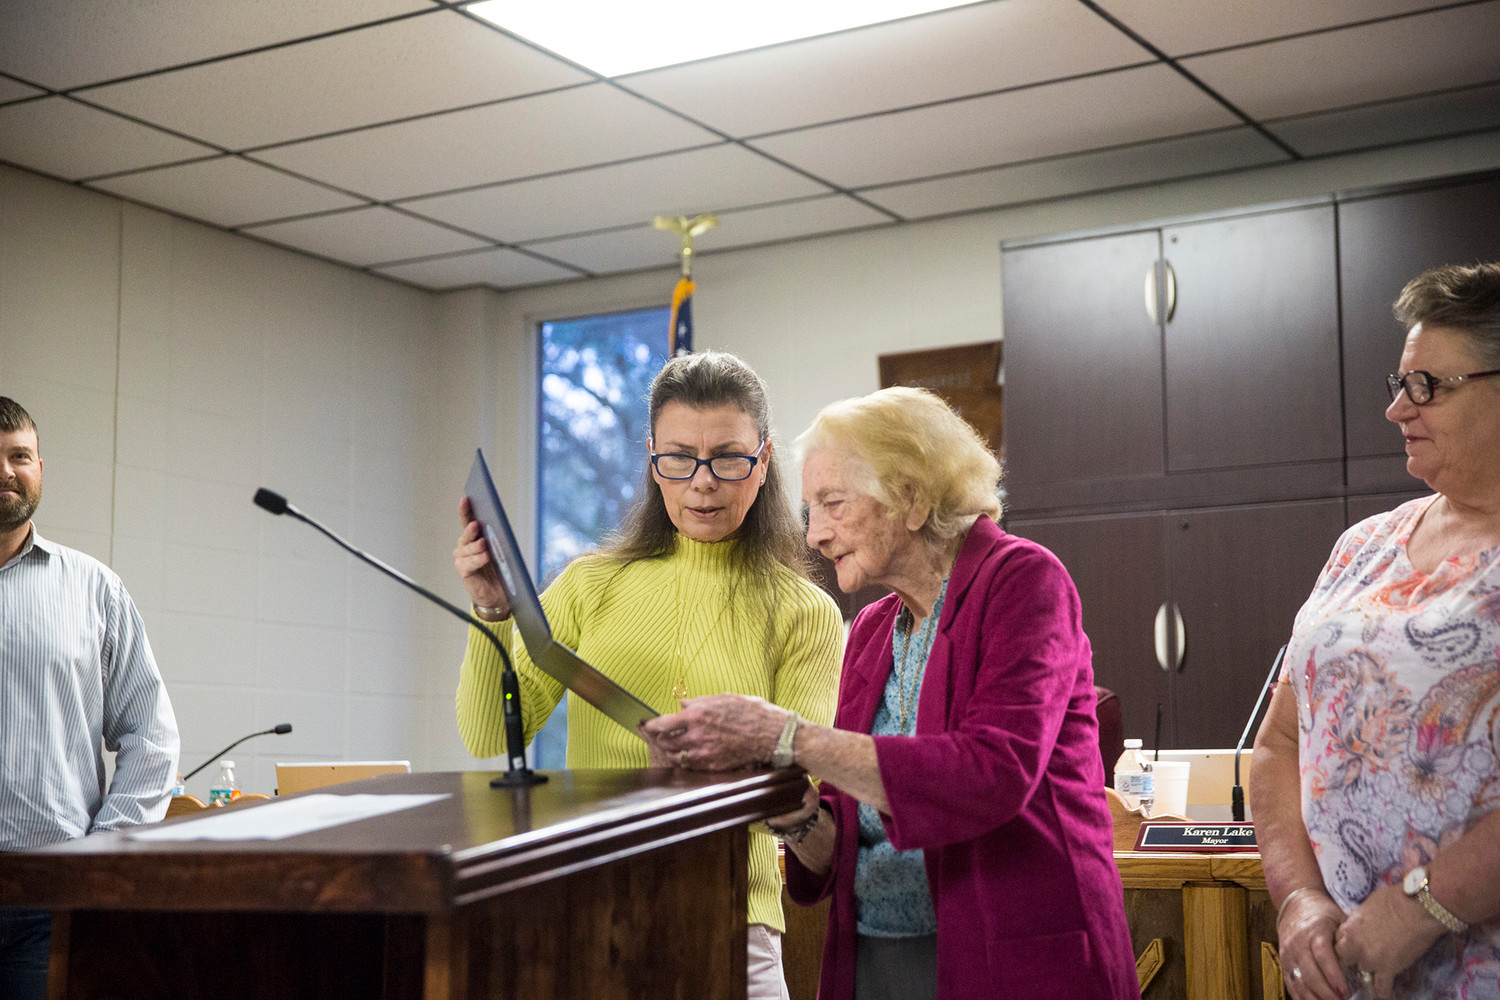 Keystone Heights Mayor Karen Lake presents a physical copy of a proclamation read during Monday's City Council meeting honoring the 100th birthday of Keystone resident Rachel Buff.